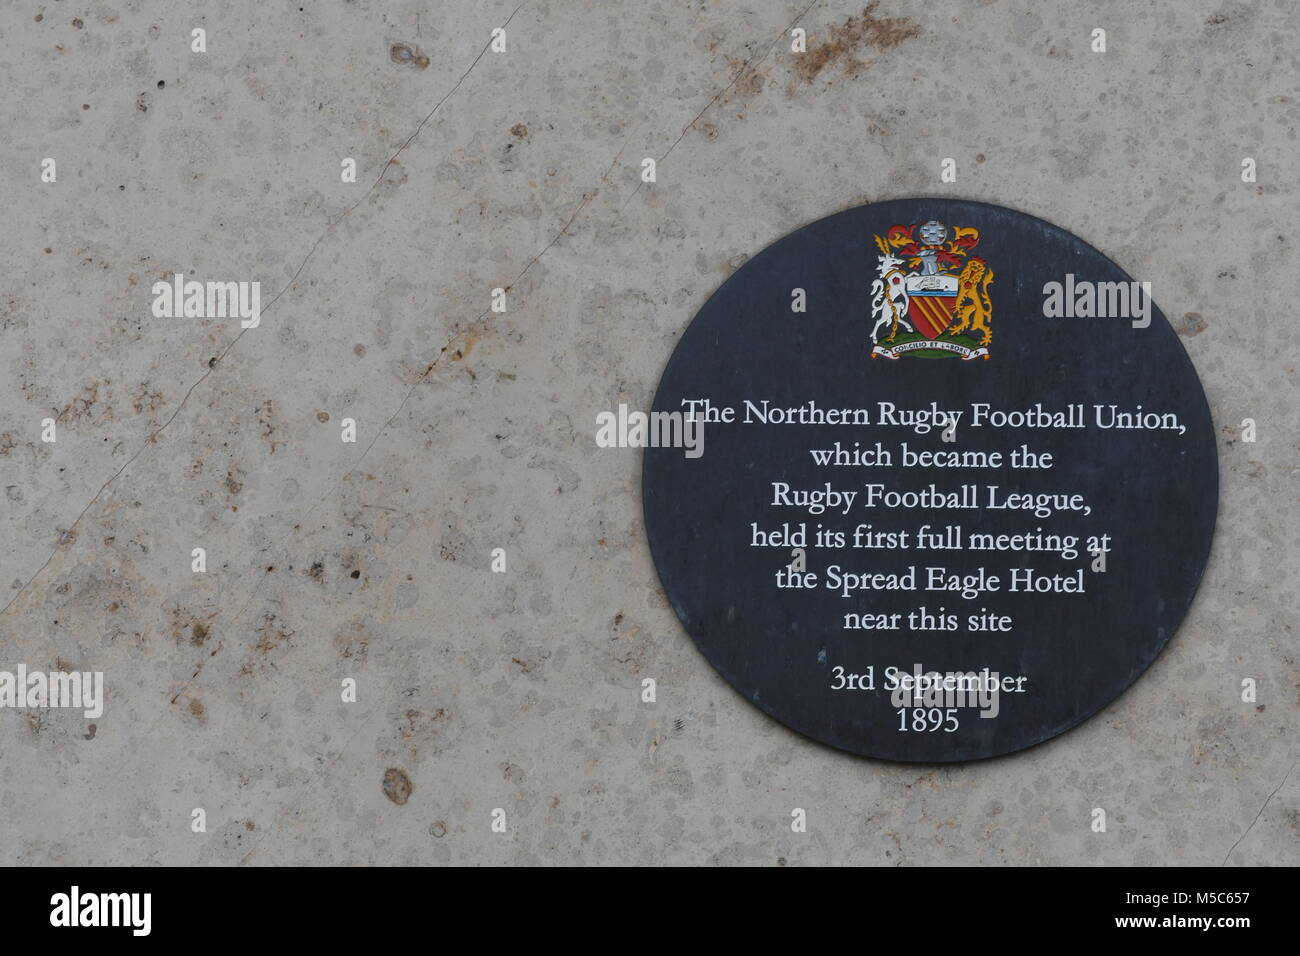 Rugby Football Union plaque - Stock Image